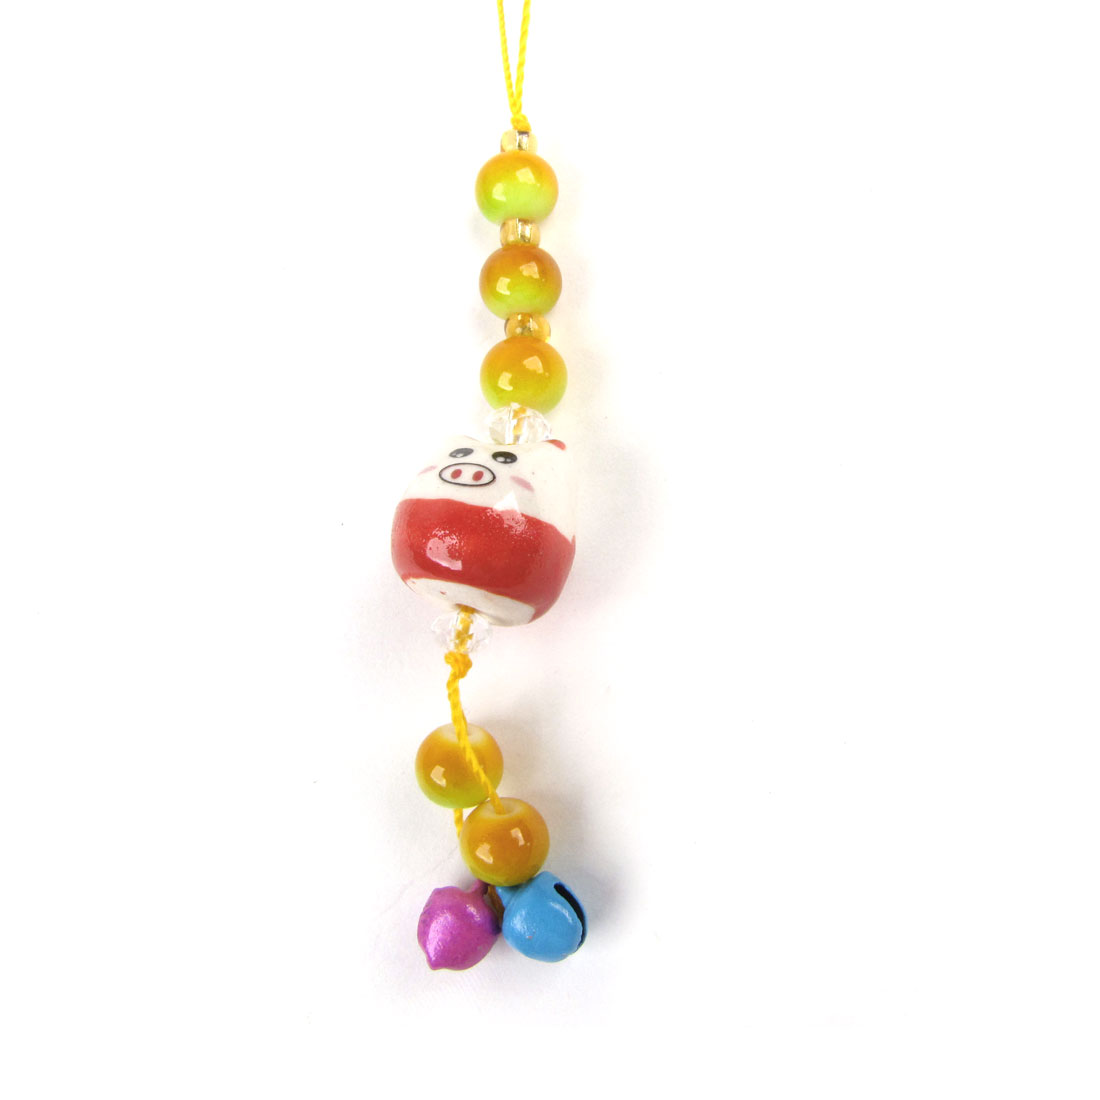 Yellow Strap 2 Bells White Red Ceramic Pig Head Pendants Mobile Phone Cord